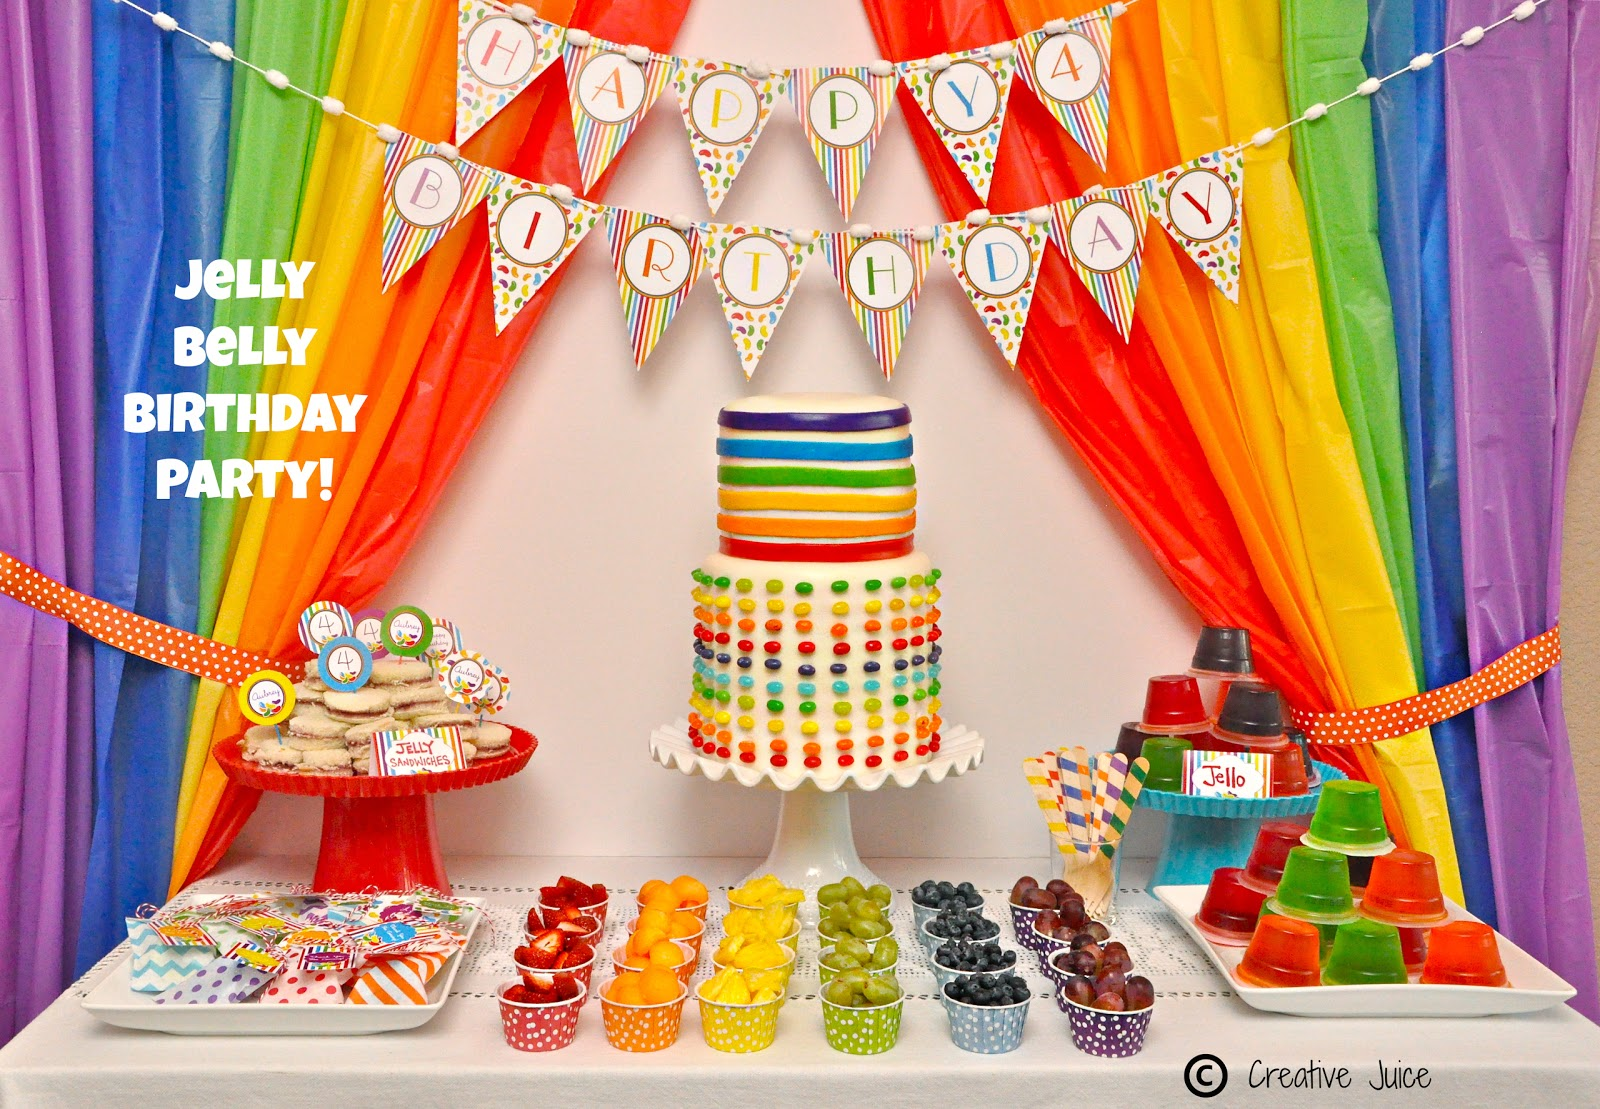 Jelly Bean Birthday Party Ideas